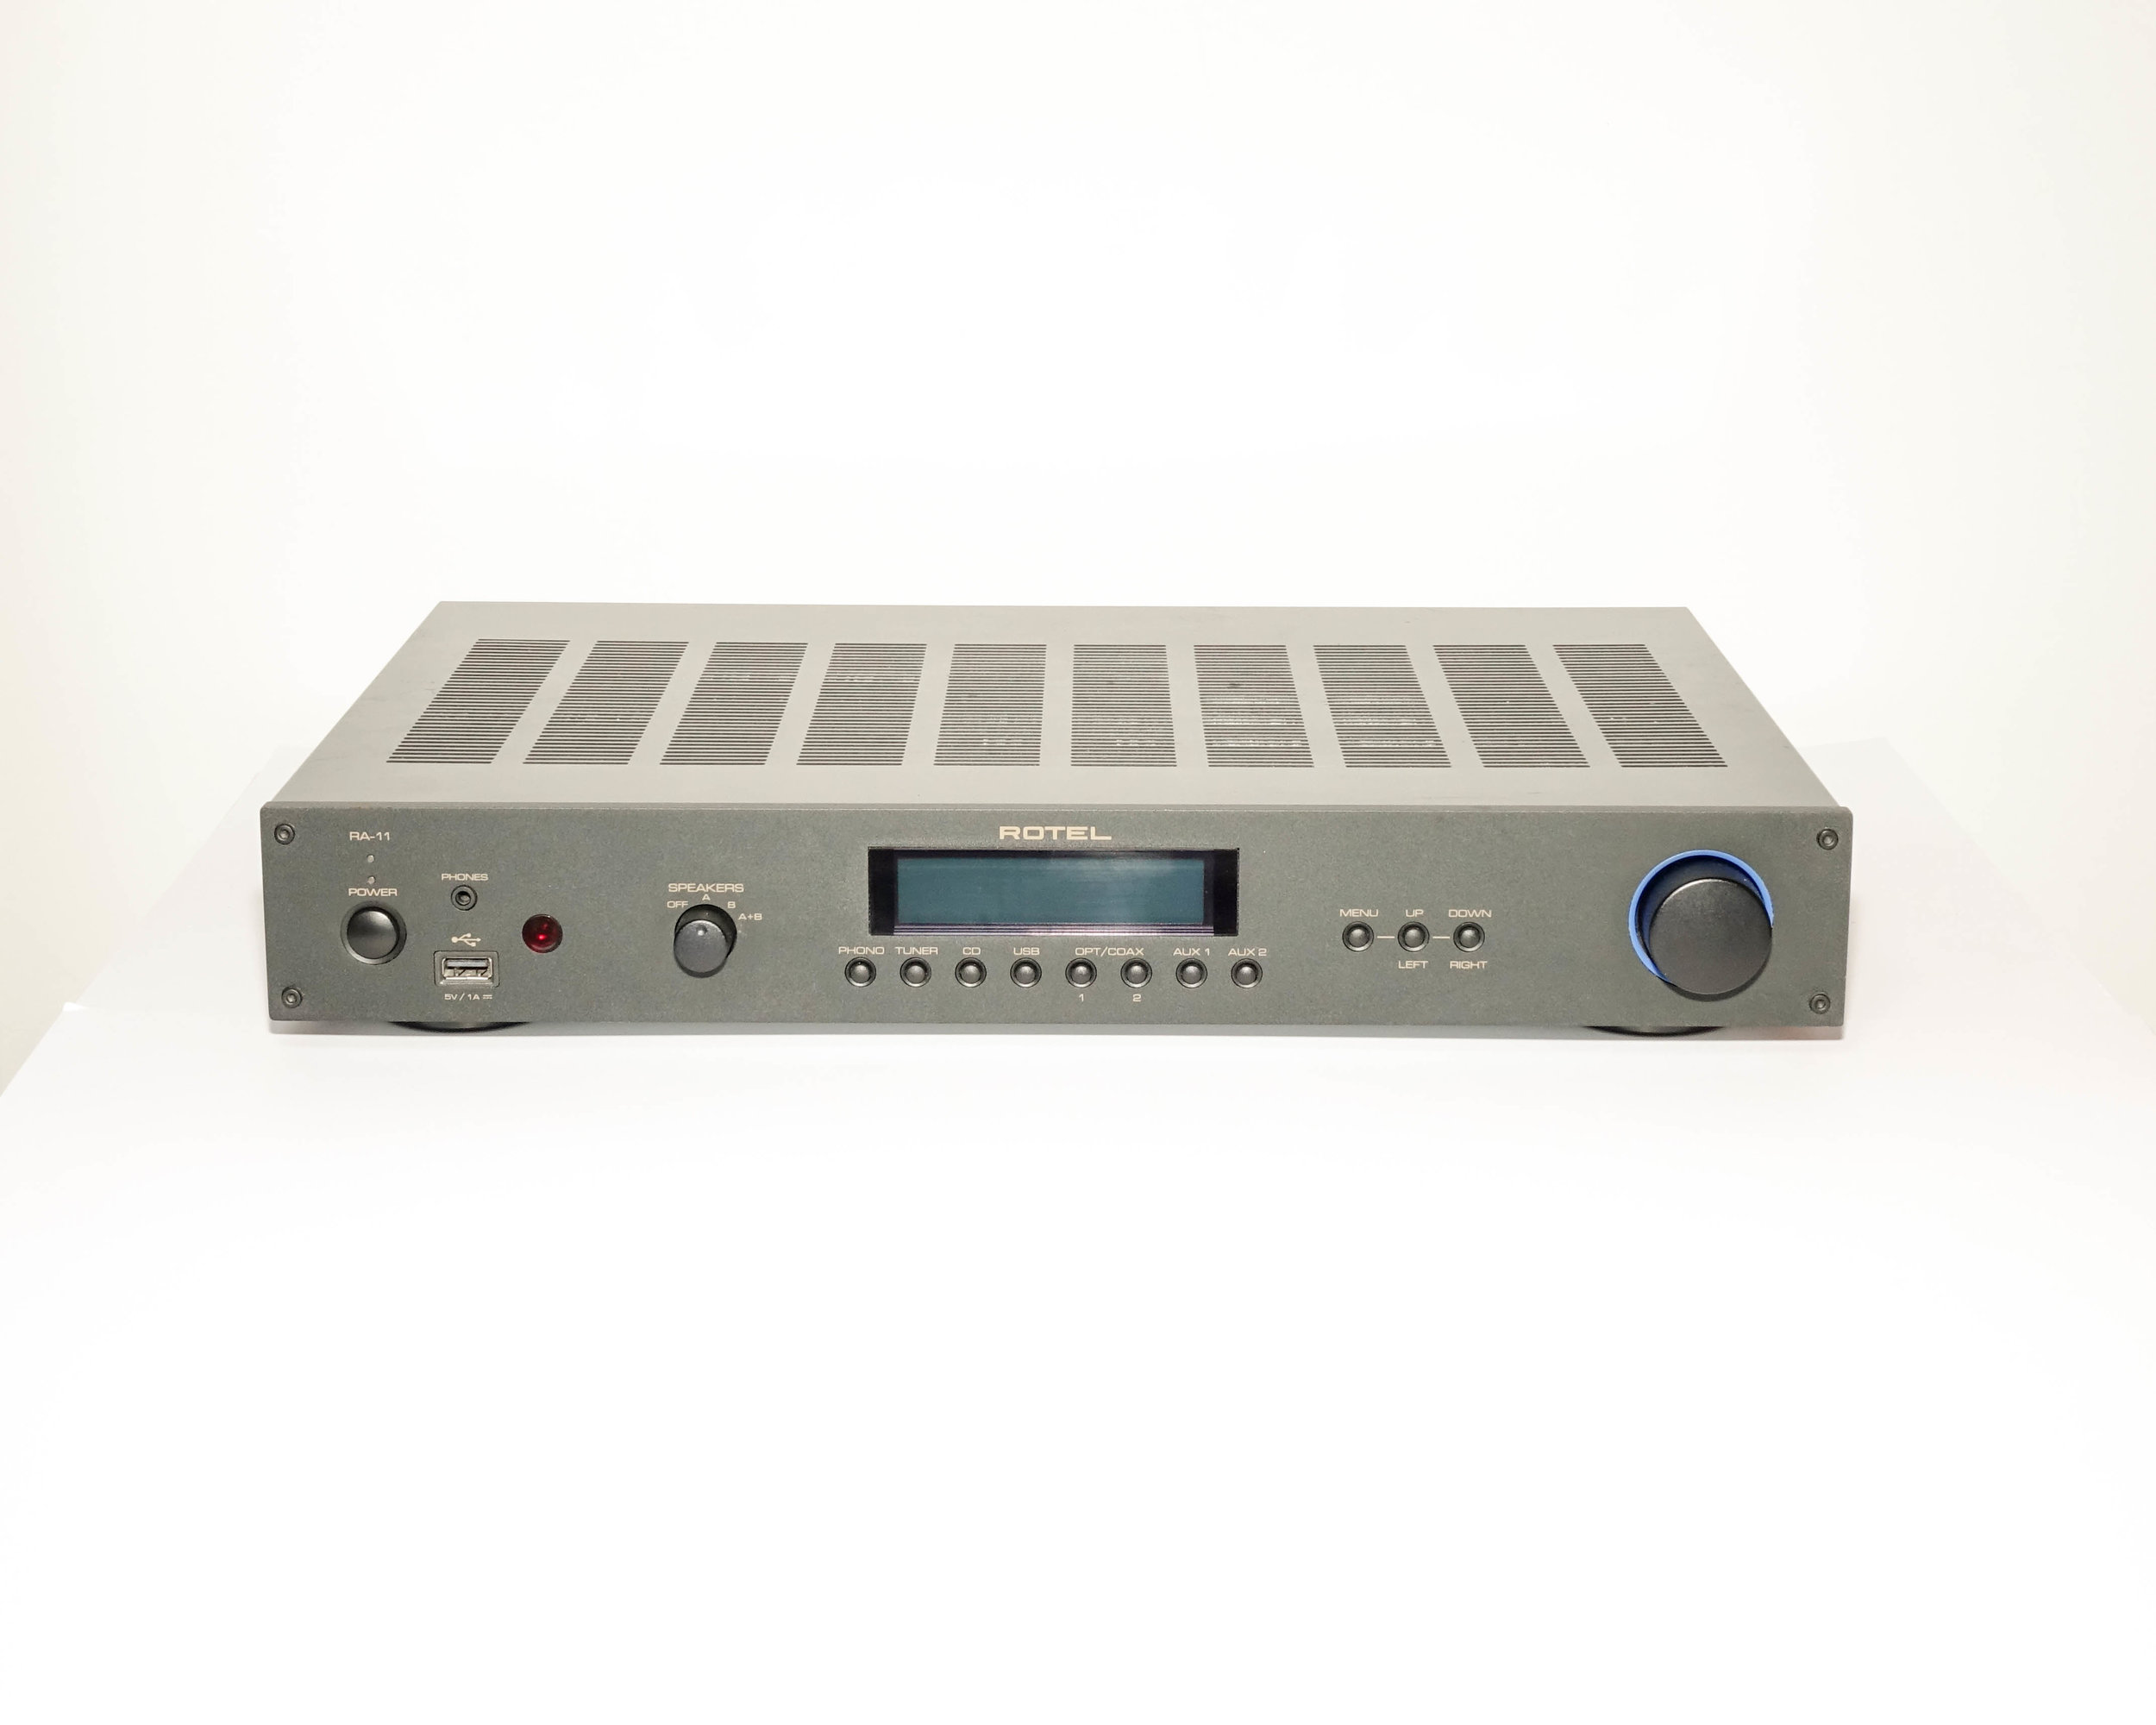 "Rotel RA-11    Continuous Power Output : 40Watts/ch (20-20kHz, < 0.03%, 8 Ω)  Total Harmonic Distortion  (20Hz-20kHz): < 0.03% at rated power  Intermodulation Distortion  (60Hz:7kHz, 4:1): < 0.03% at rated power  Frequency Response  (Phono input): 20Hz-15kHz, ±0.3dB  Frequency Response  (Line Level Inputs): 10Hz-100kHz, ±1dB  Input Sensitivity / Impedance  (Phono input): 2.5mV / 47 k Ω  Input Sensitivity / Impedance  (Line Level Inputs): 150mV / 24 k Ω  Input Overload  (Phono input): 180mV  Input Overload  (Line Level Inputs): 5V  Preamp Output / Impedance : 1V / 470 Ω  Tone Controls  (Bass / Treble): ±4 dB at 100Hz / 10kHz  Signal to Noise Ratio  (IHF ""A"" weighted) (Phono input): 80dB  Signal to Noise Ratio  (IHF ""A"" weighted) (Line Level Inputs): 100dB   Digital Section -   Frequency Response : 10Hz-95kHz ±3.0dB (MAX)  Signal to Noise Ratio  (IHF ""A"" weighted): 100dB  Input Sensitivity/Impedance : 0 dBfs/75 Ohms  Pre-out/Impedance : 1.2V/470V (at -20dB)  Decodable Front USB/iPod Digital Signals : AAC (m4a), WAV, MP3, WMA (up to 48K 16bit)  Coaxial/Optical PCM : LPCM  File Formats : Real Audio, MP3, OGG Vorbis, WAV, AIFF and AU   General -    Power Requirements : (AC) 120V, 60Hz (USA) 230V, 50Hz (Europe)  Power Consumption : 220Watts  Standby Power Consumption : 0.5W  Dimensions  (W x H x D): 430 x 72 x 342mm  Panel Height : 60mm  Weight  (Net): 6.39kg"